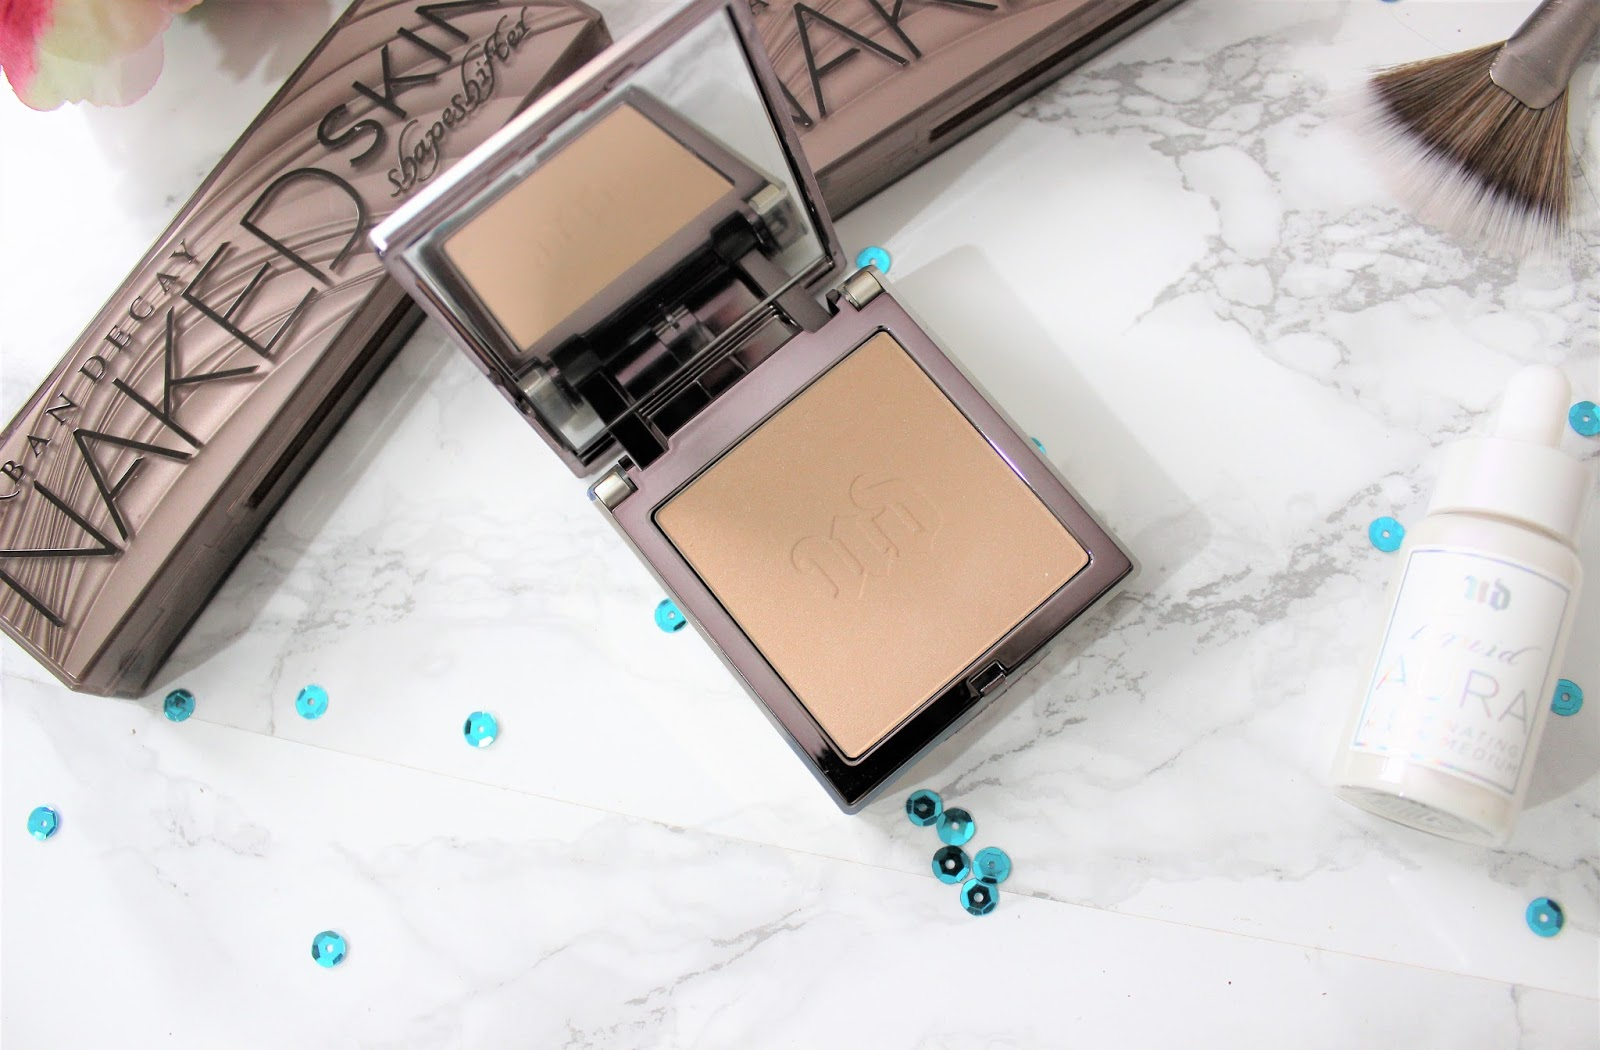 Urban Decay Beauty Powder